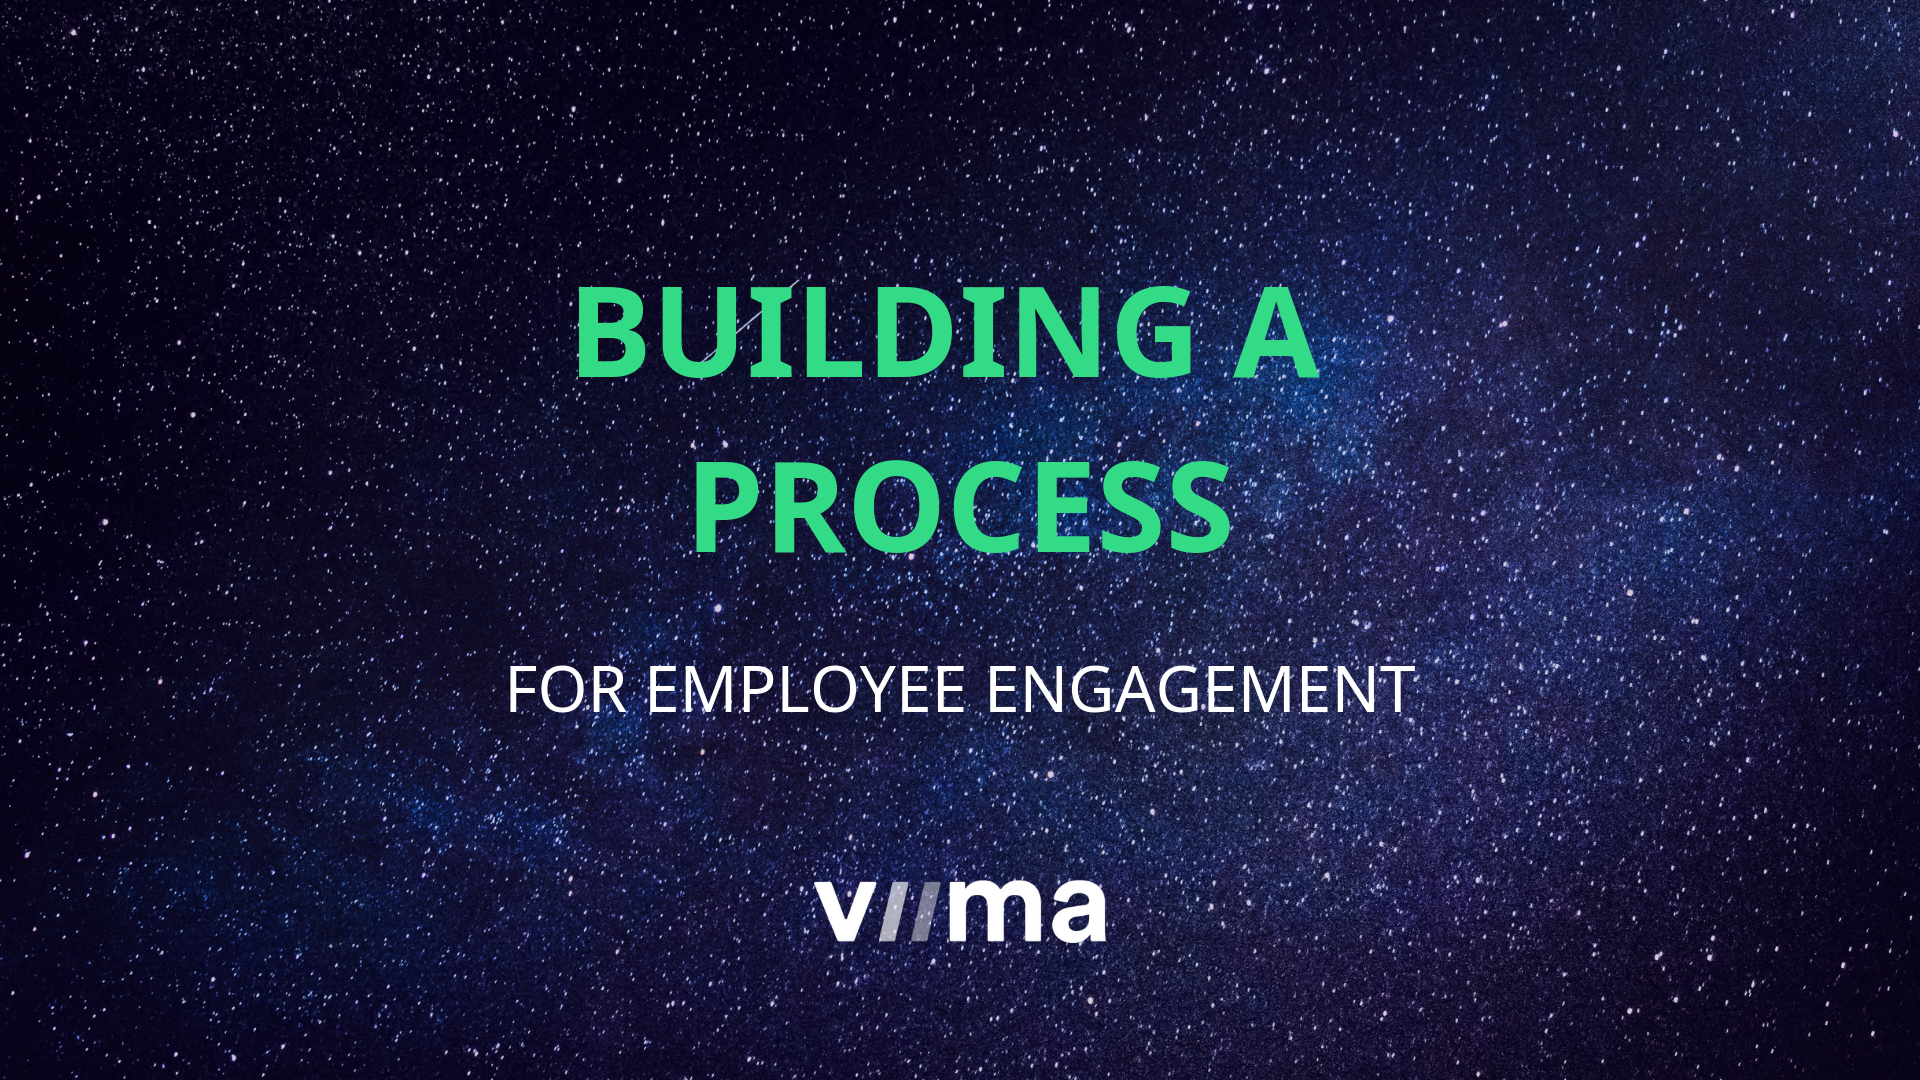 Process for employee engagement cover